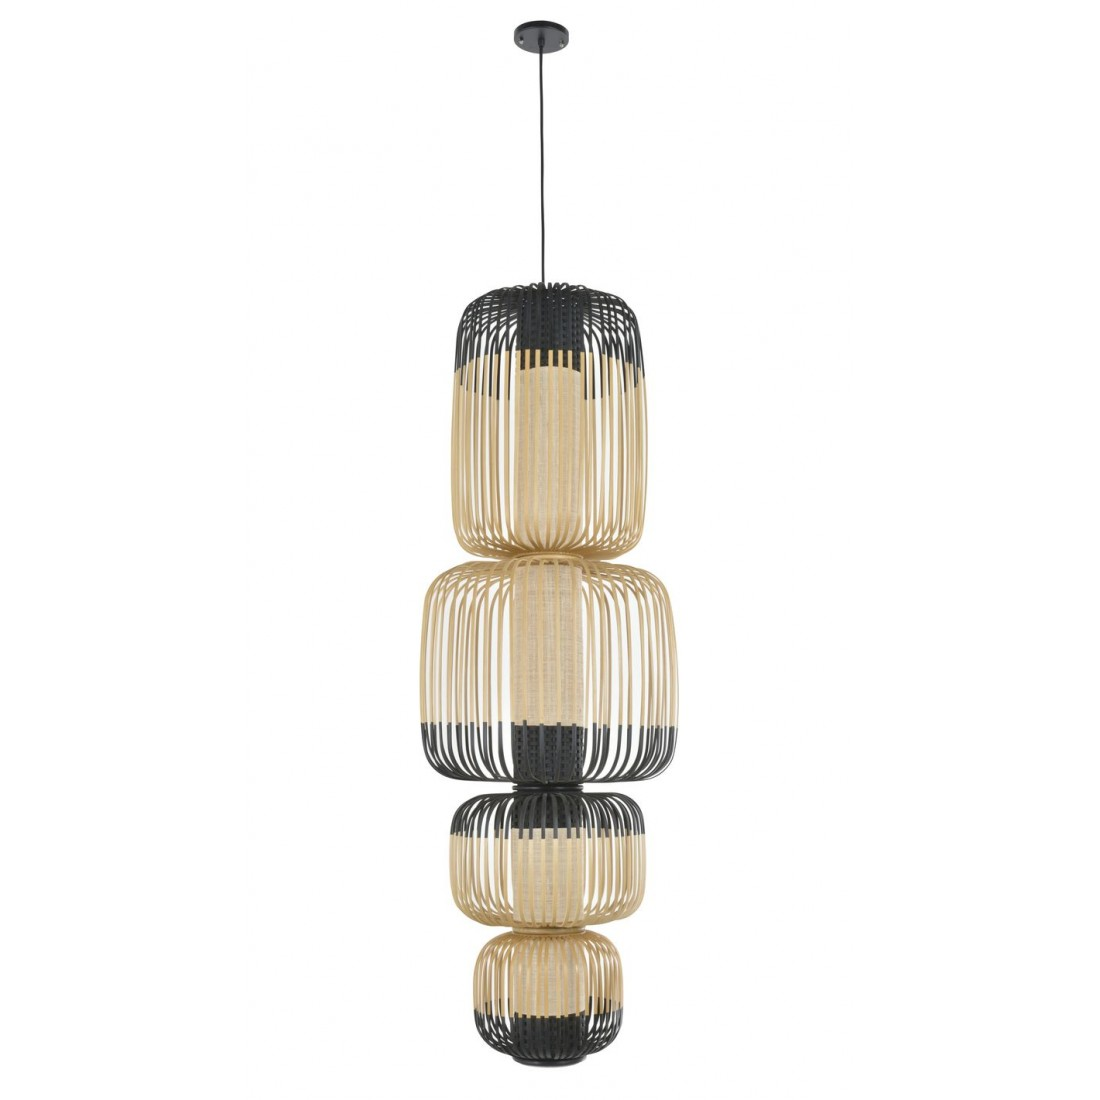 Suspension Bamboo 4 - Forestier